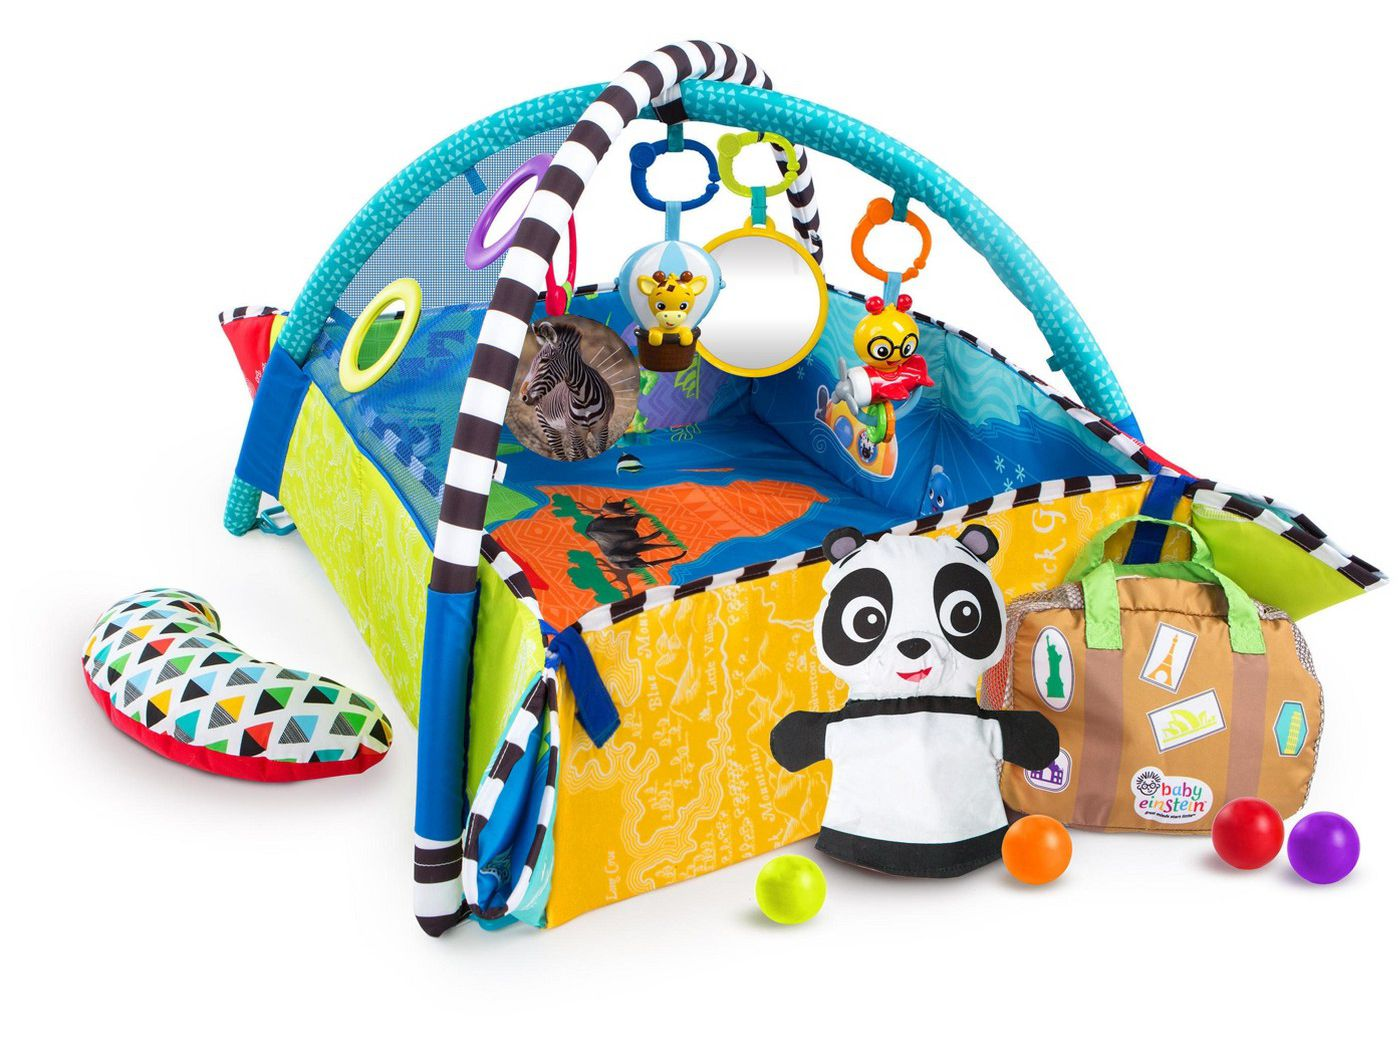 Sensory Toy Baby Floor Mirror Toy For Baby Toddler Play /& Self-Discovery